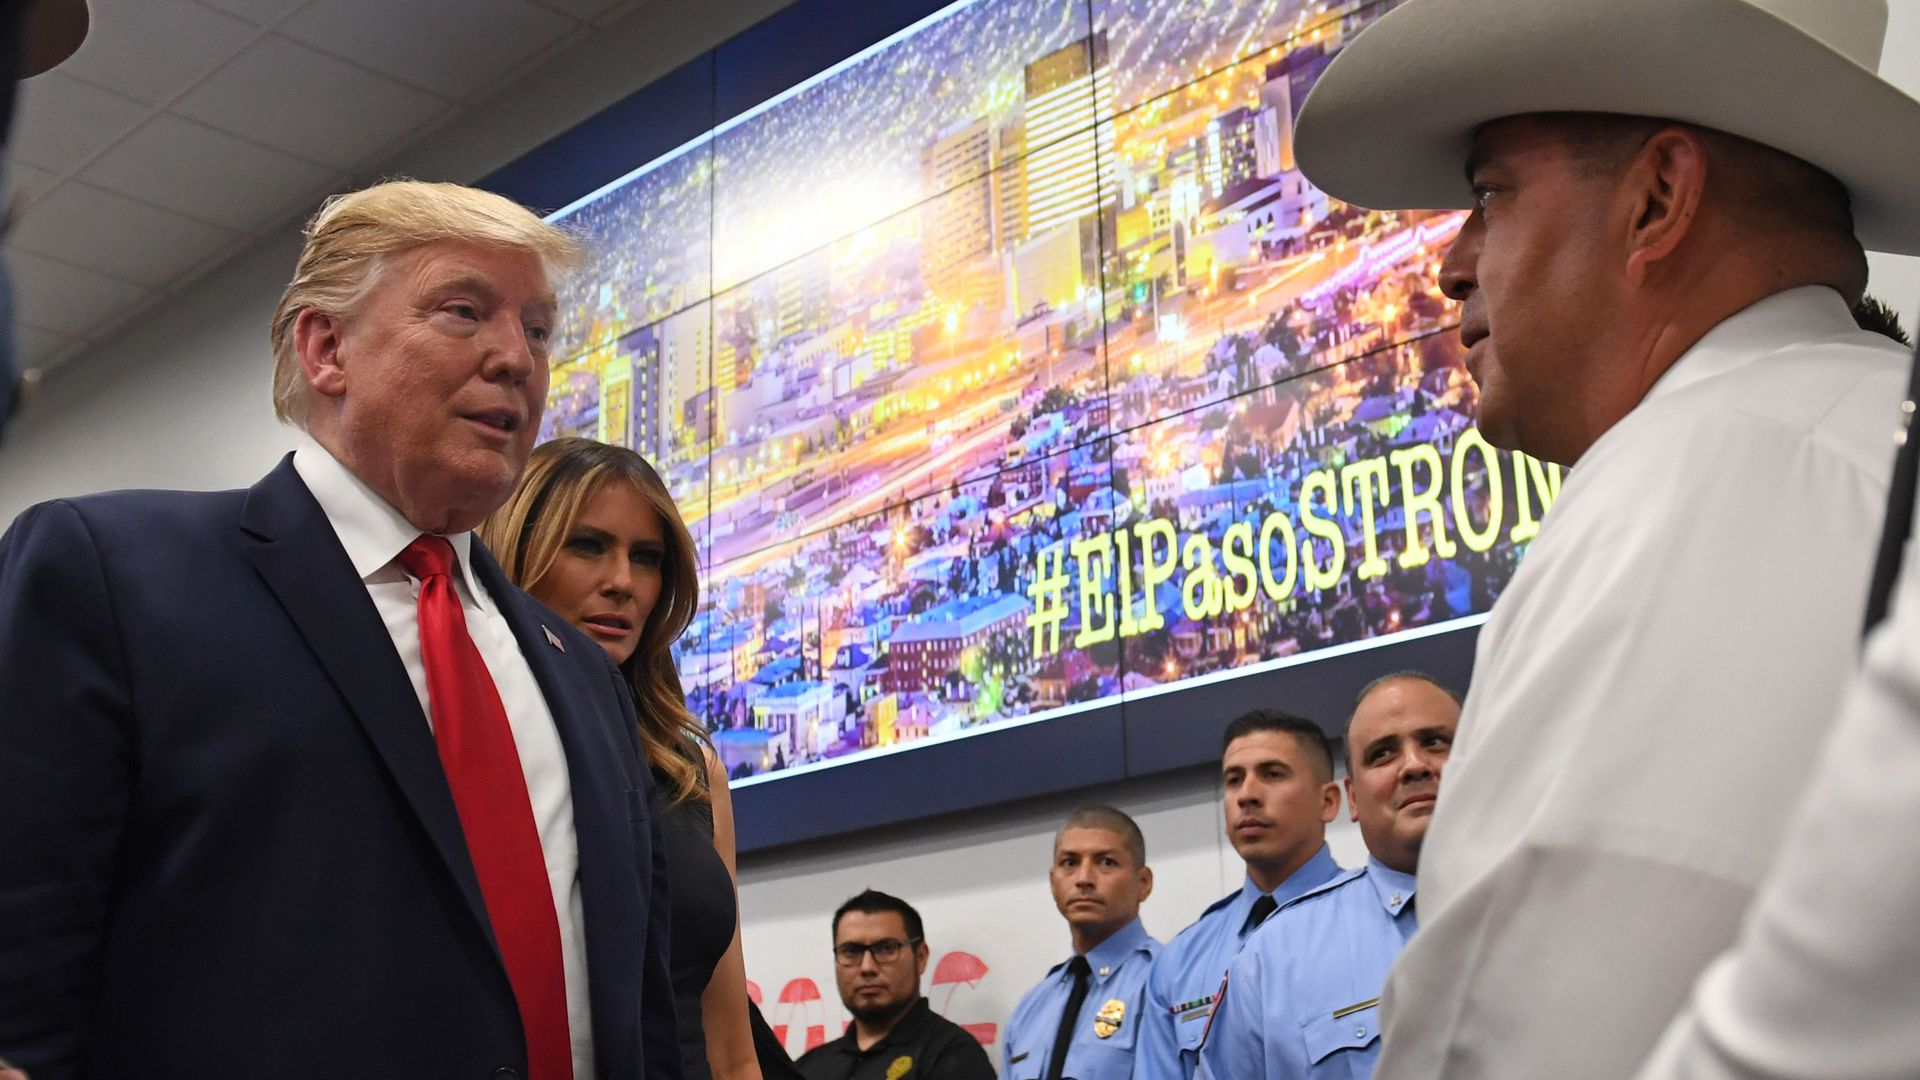 US President Donald Trump and First Lady Melania Trump greet first responders as he visits El Paso Regional Communications Center in El Paso